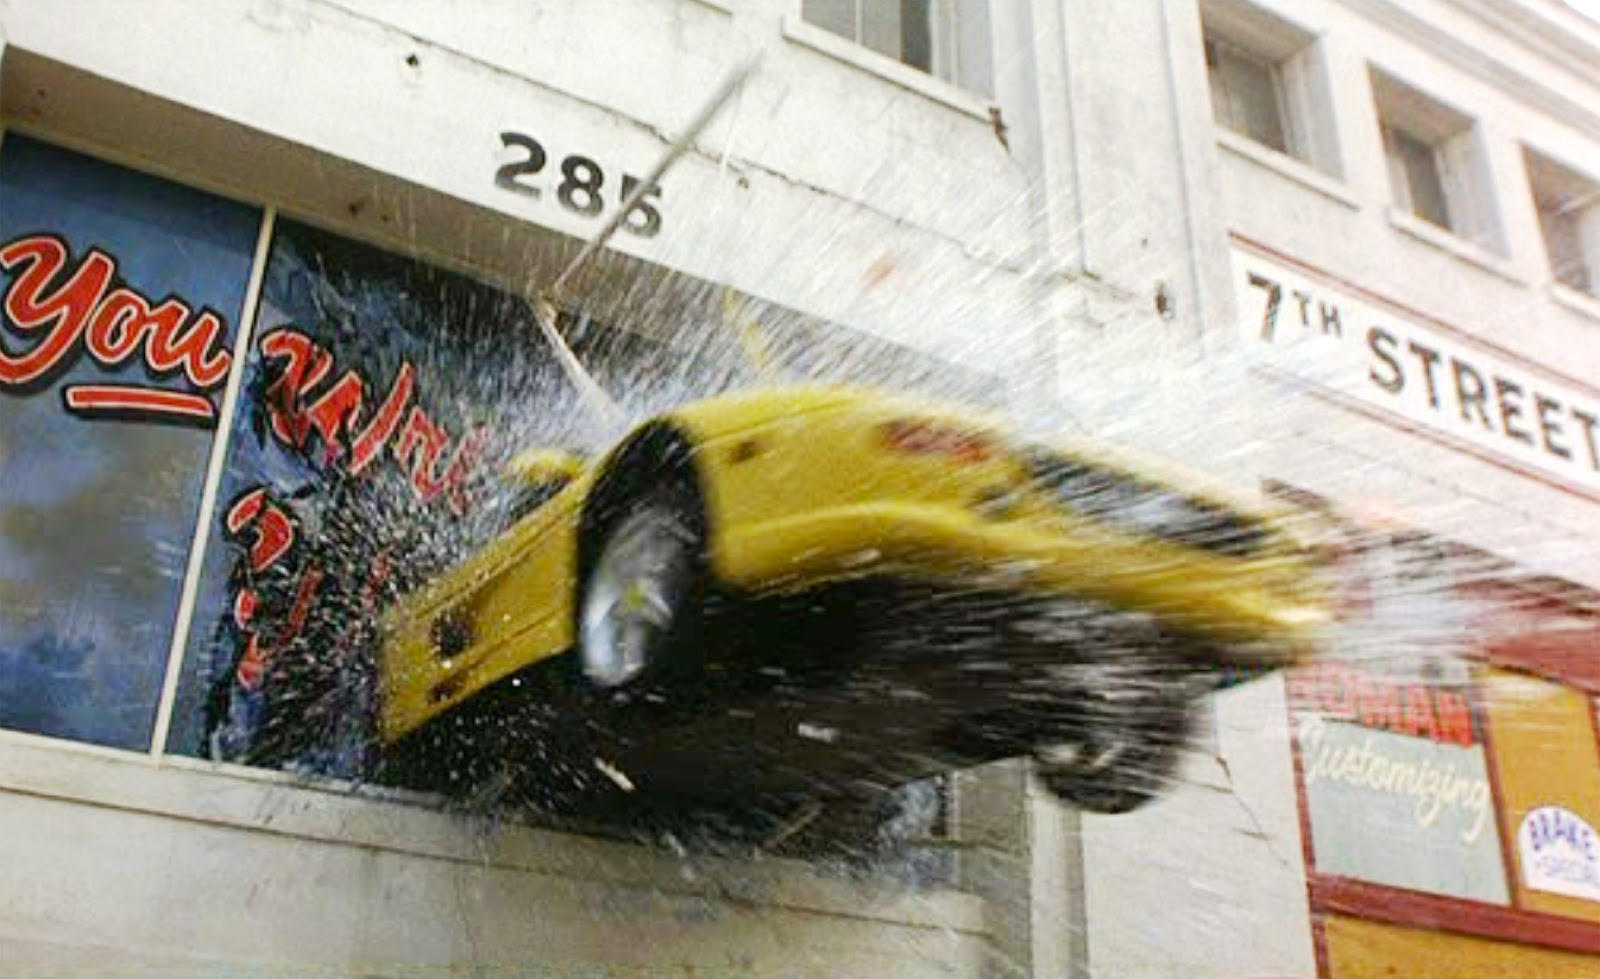 The Rock Car Chase